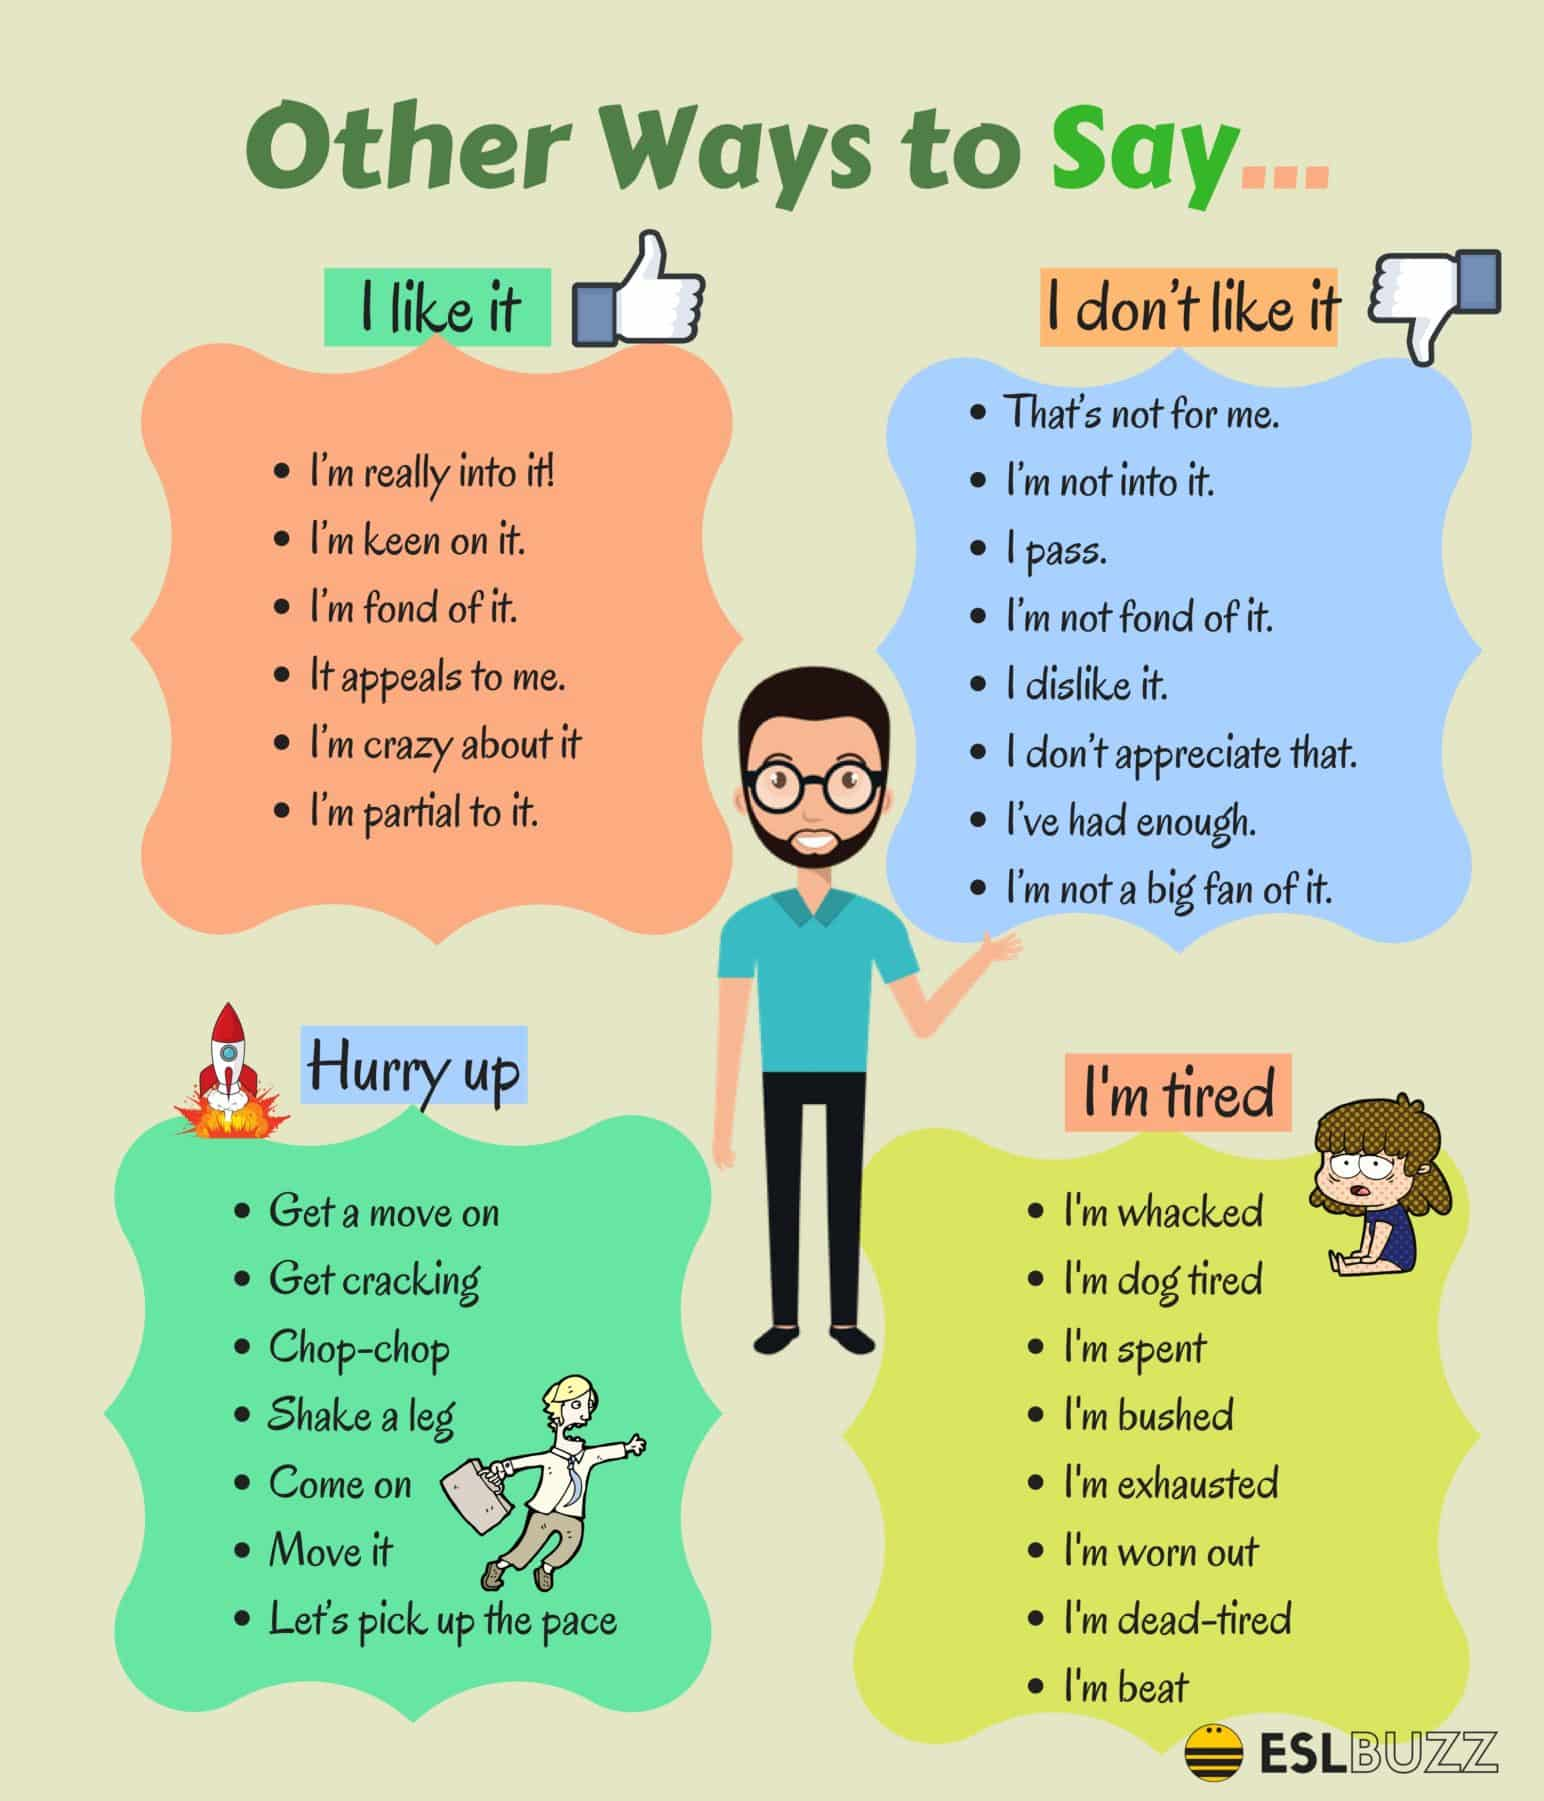 Learn 80+ Useful Expressions in English | Other Ways to Say ... 13